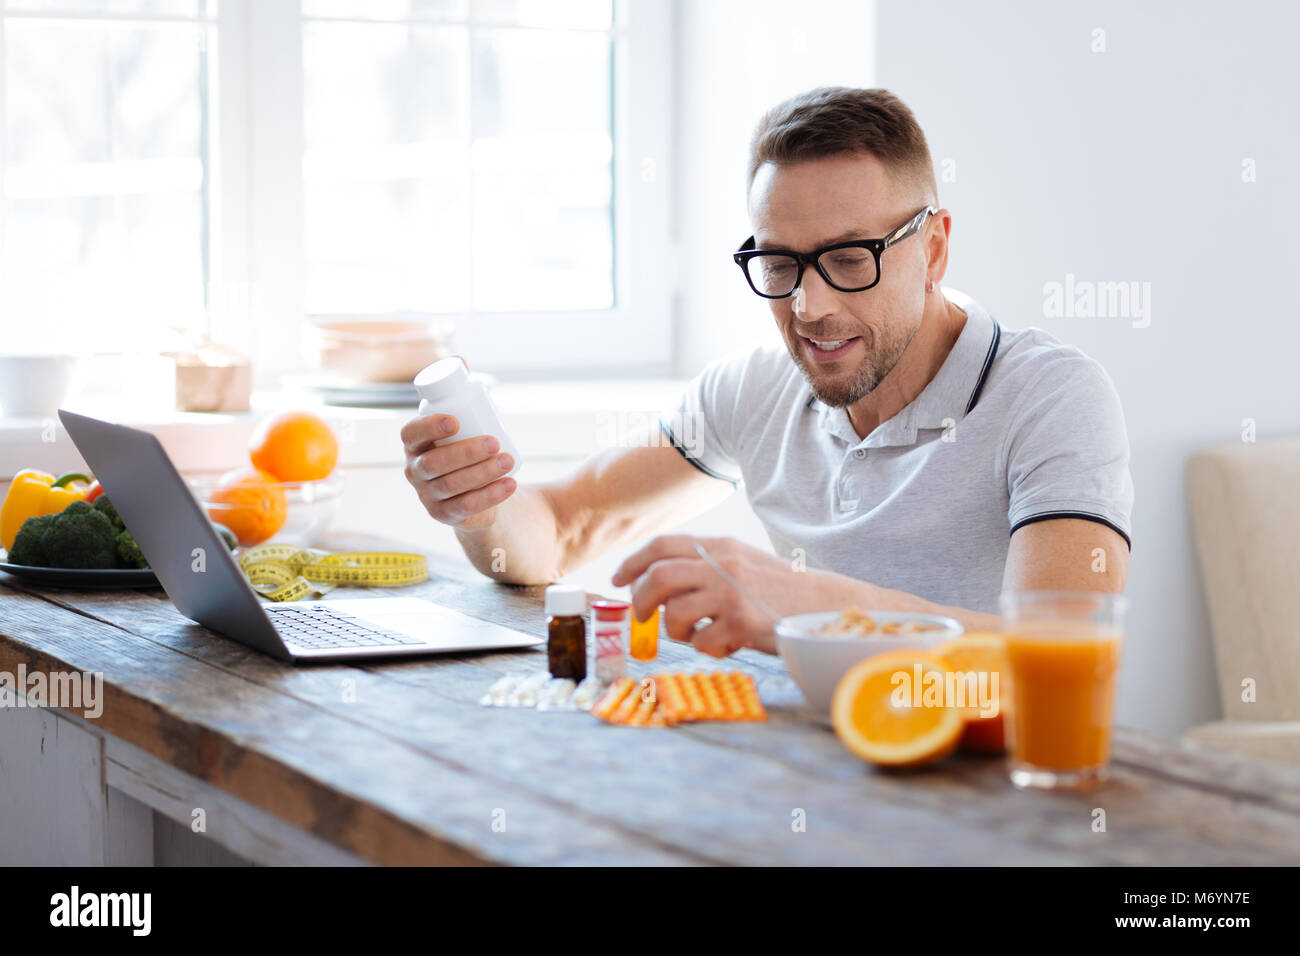 Charmant mà man studying biohacking compléments alimentaires Photo Stock